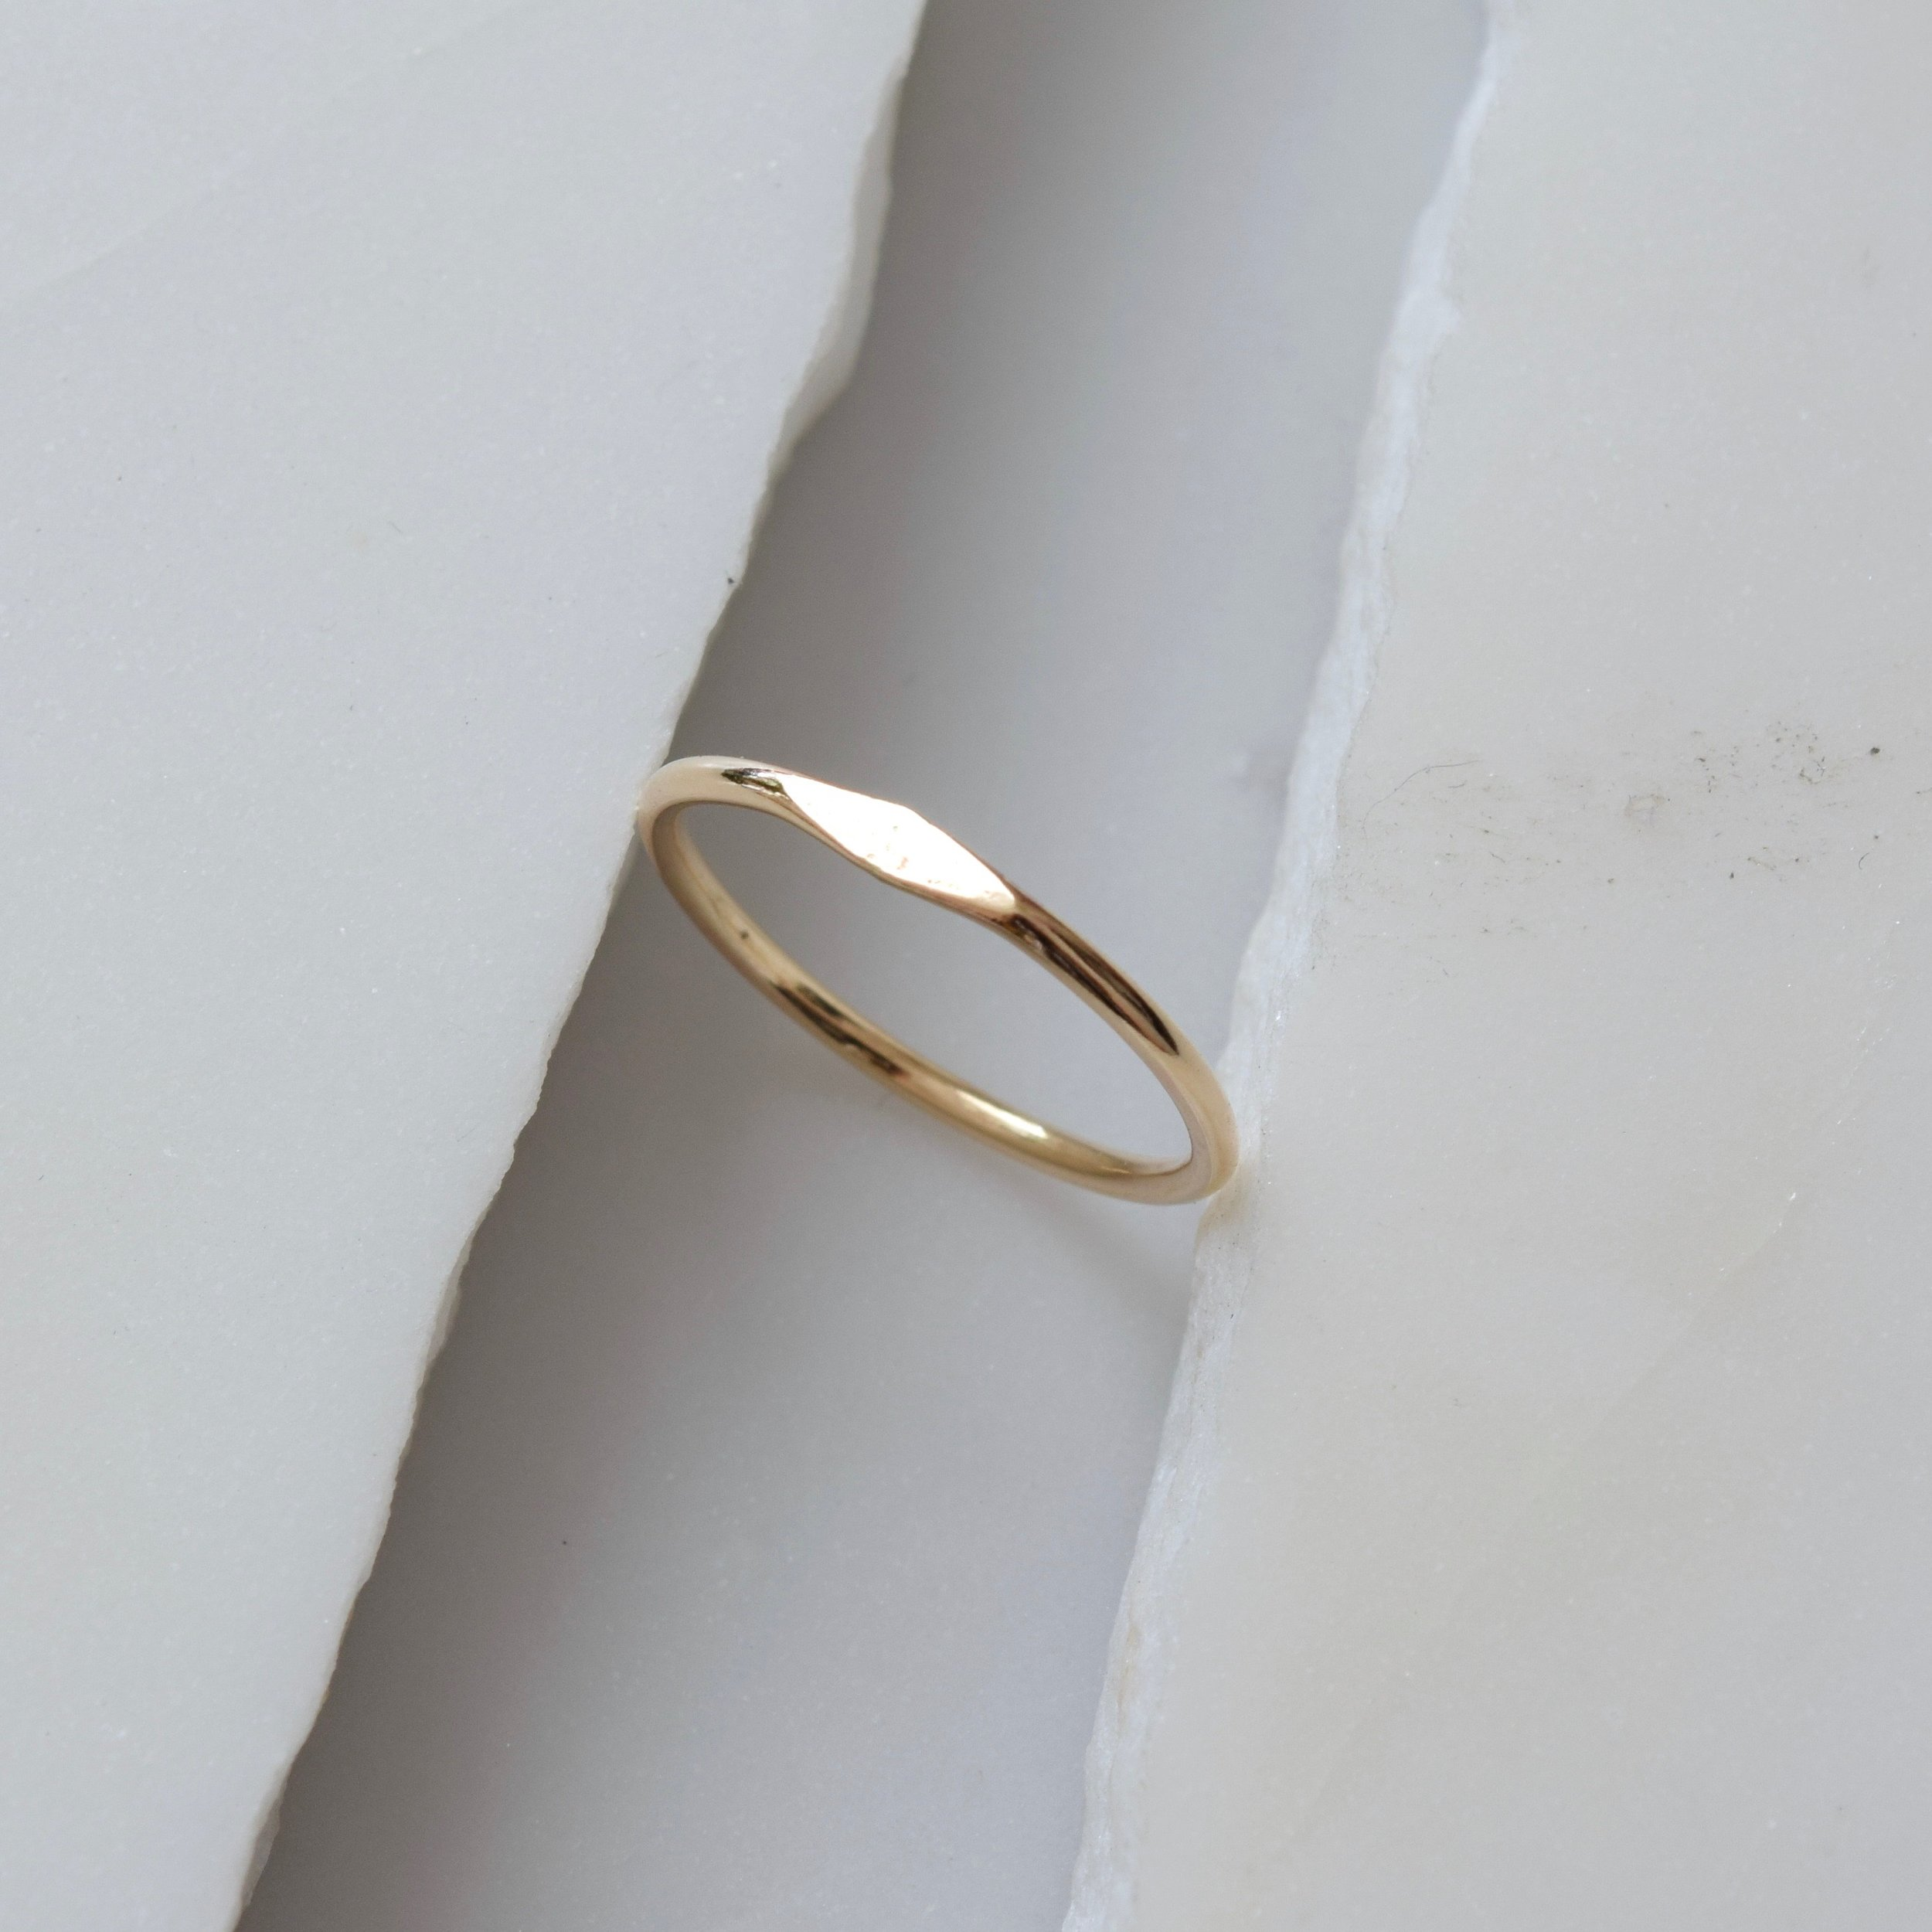 A solid gold ring because she has a heart of gold.